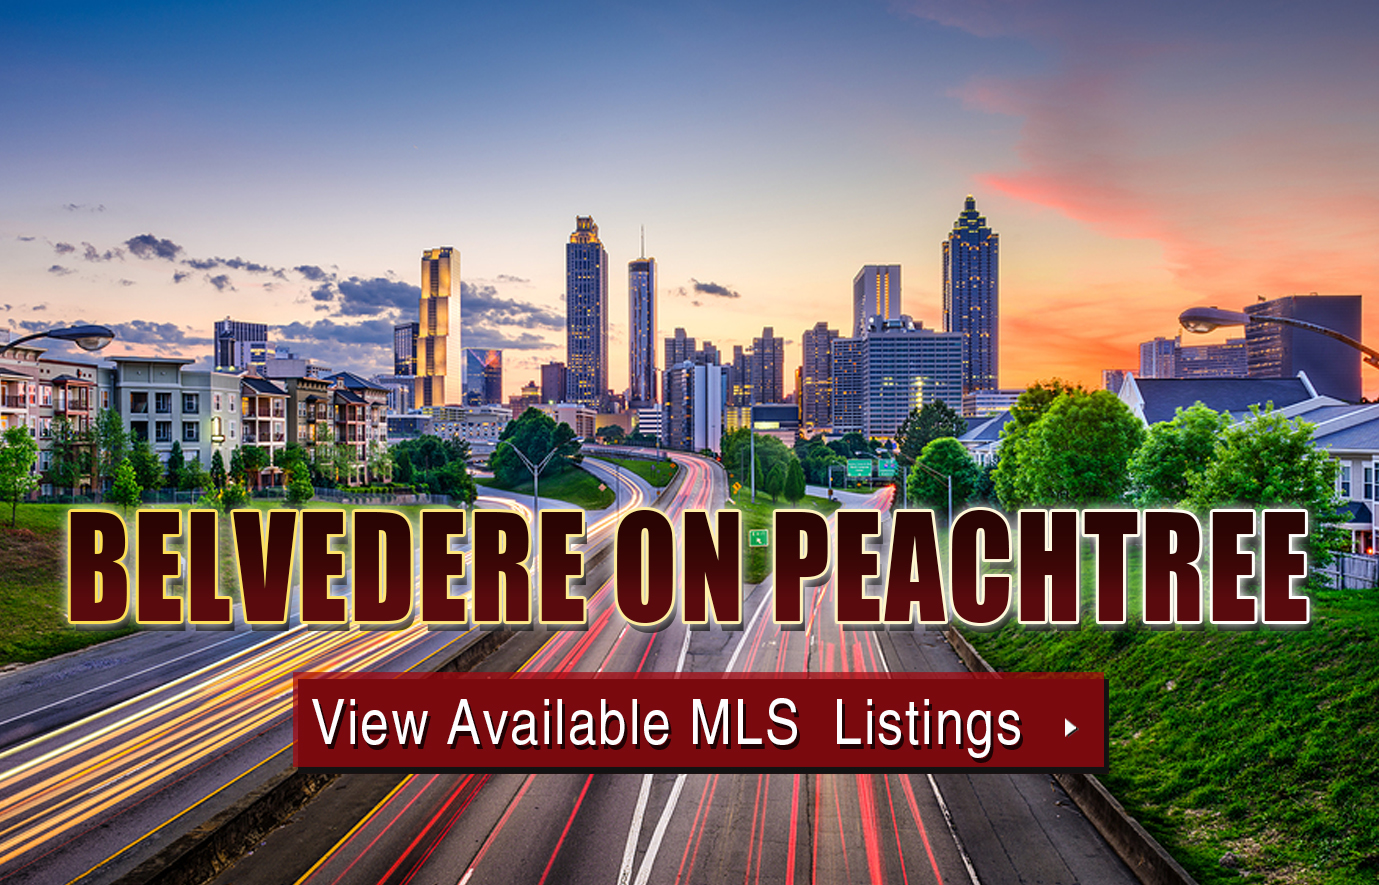 Townhomes at Belvedere on Peachtree